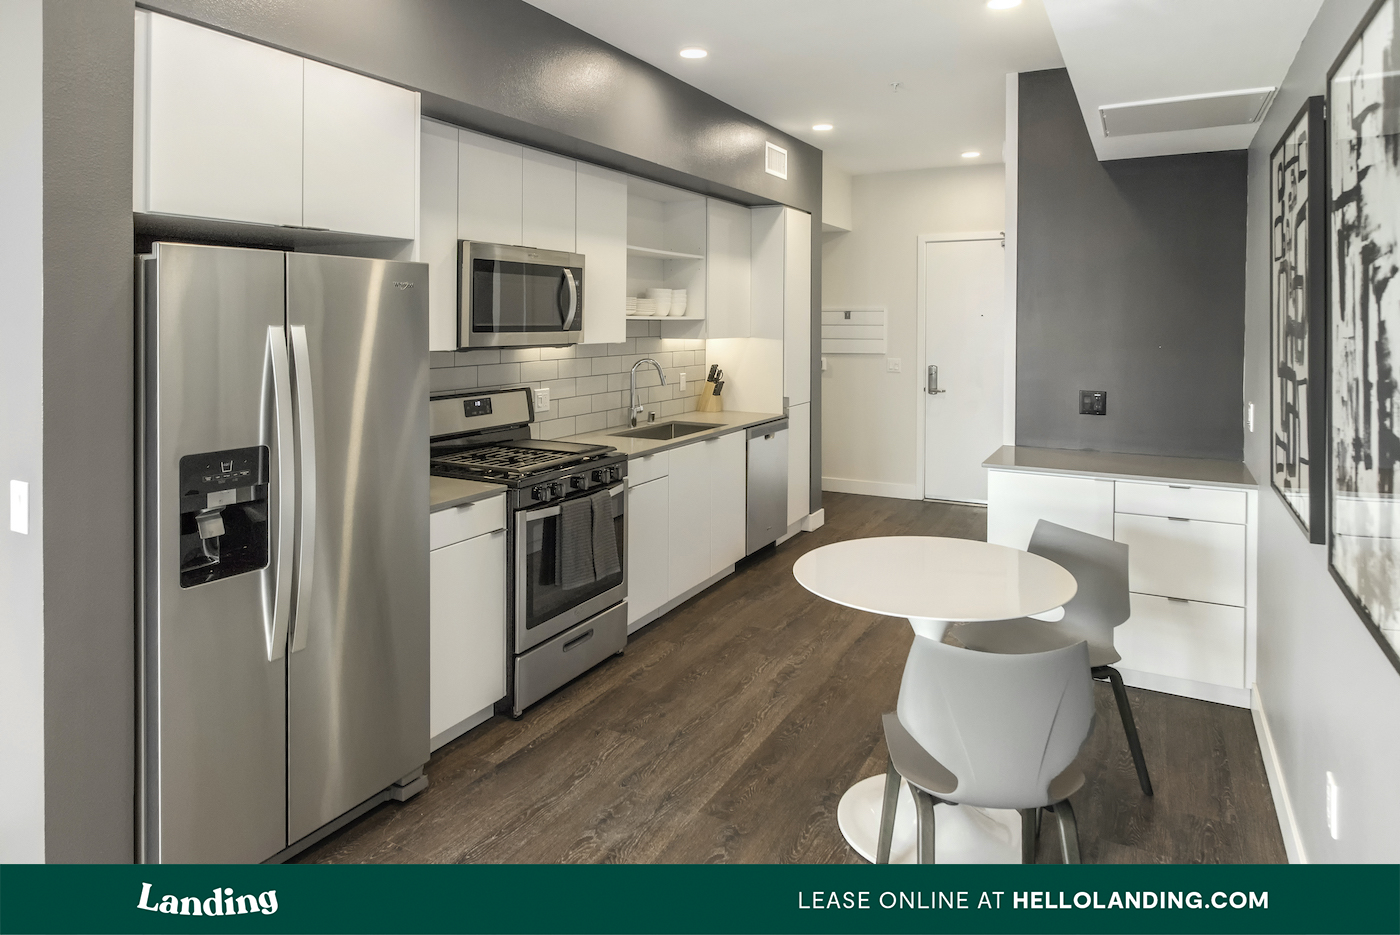 Landing Furnished Apartment Amara at MetroWest Apartments photo